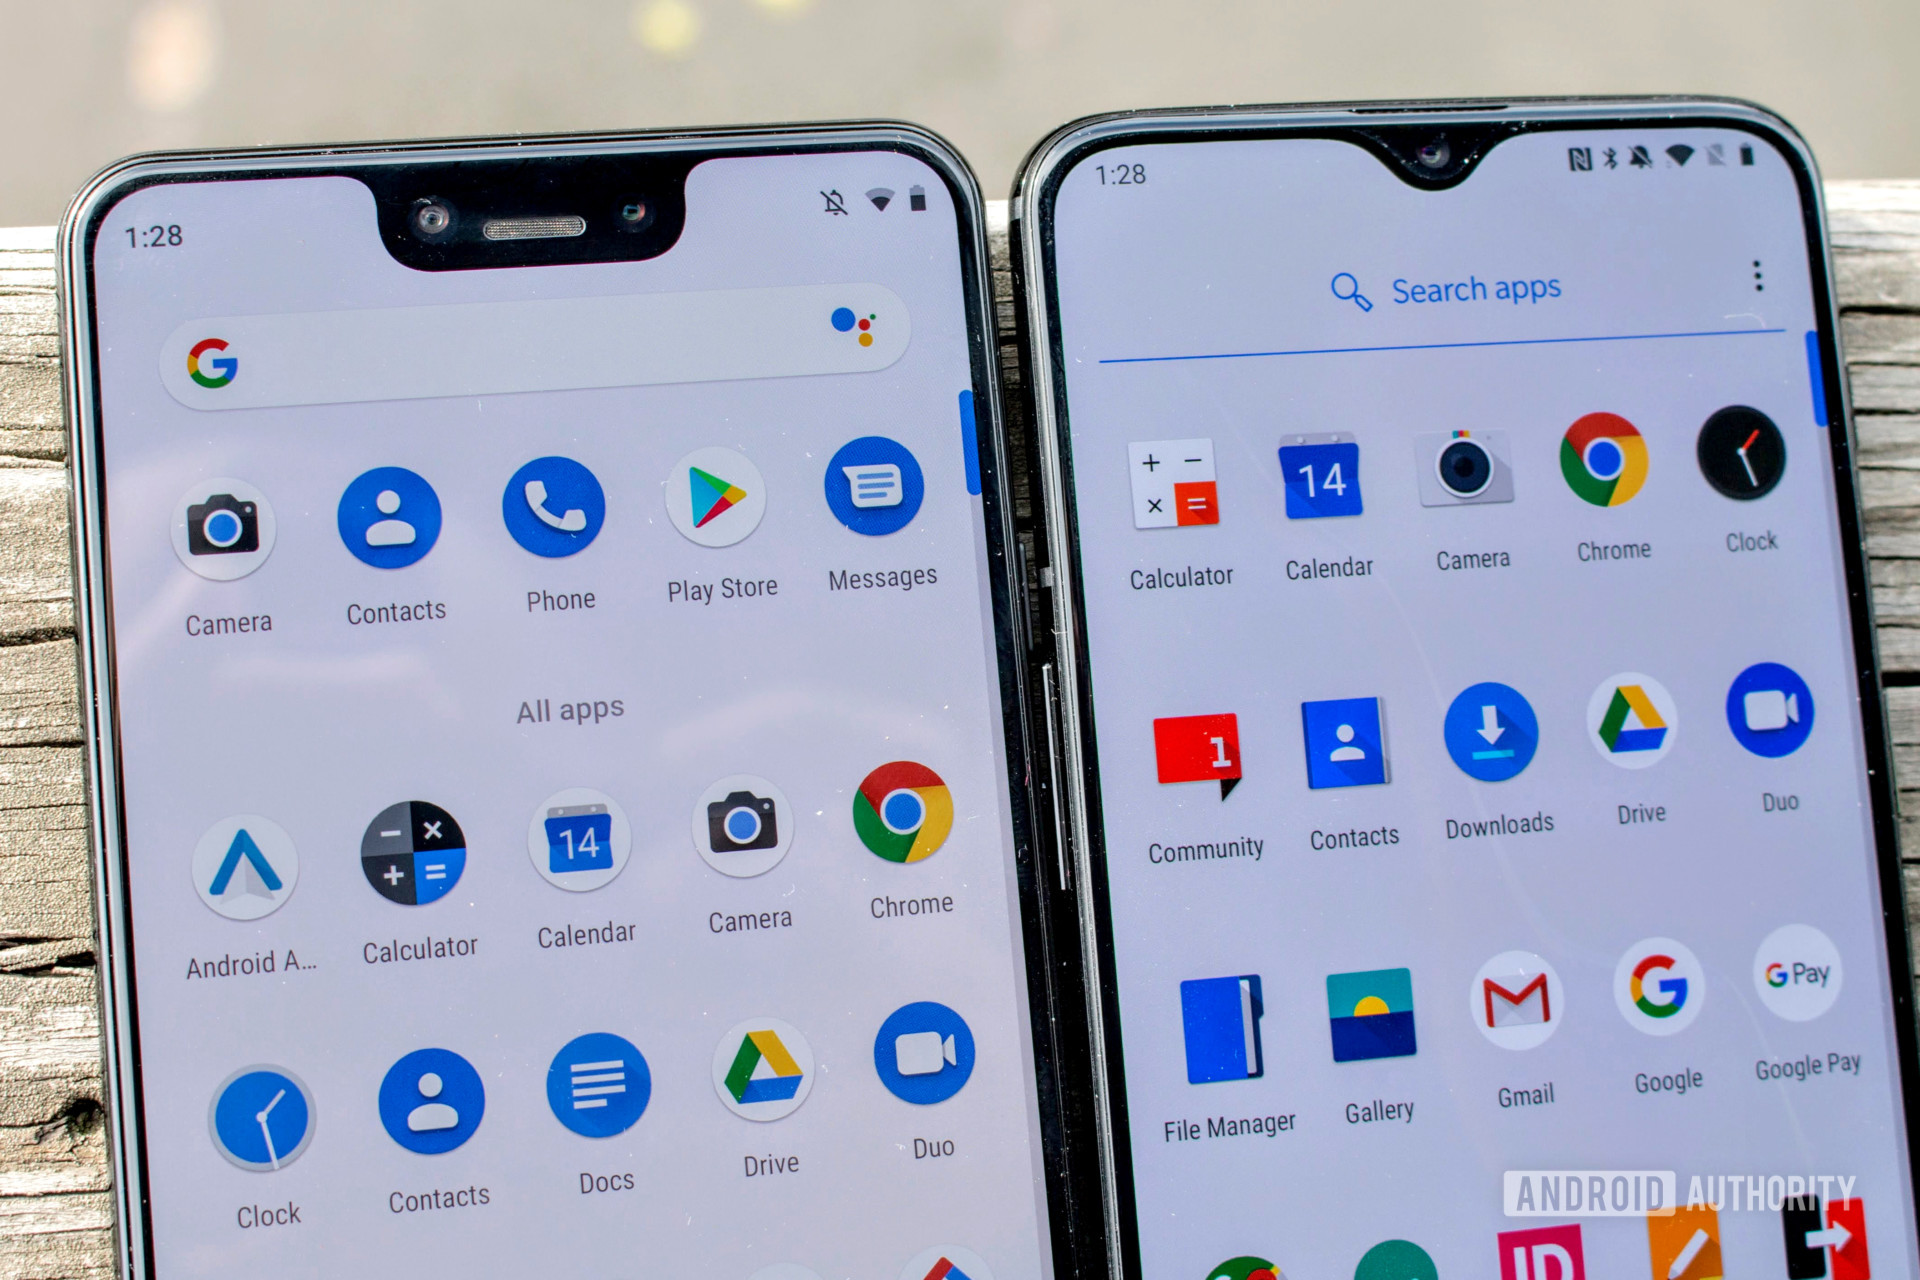 The OnePlus 6T next to the Google Pixel 3 XL.